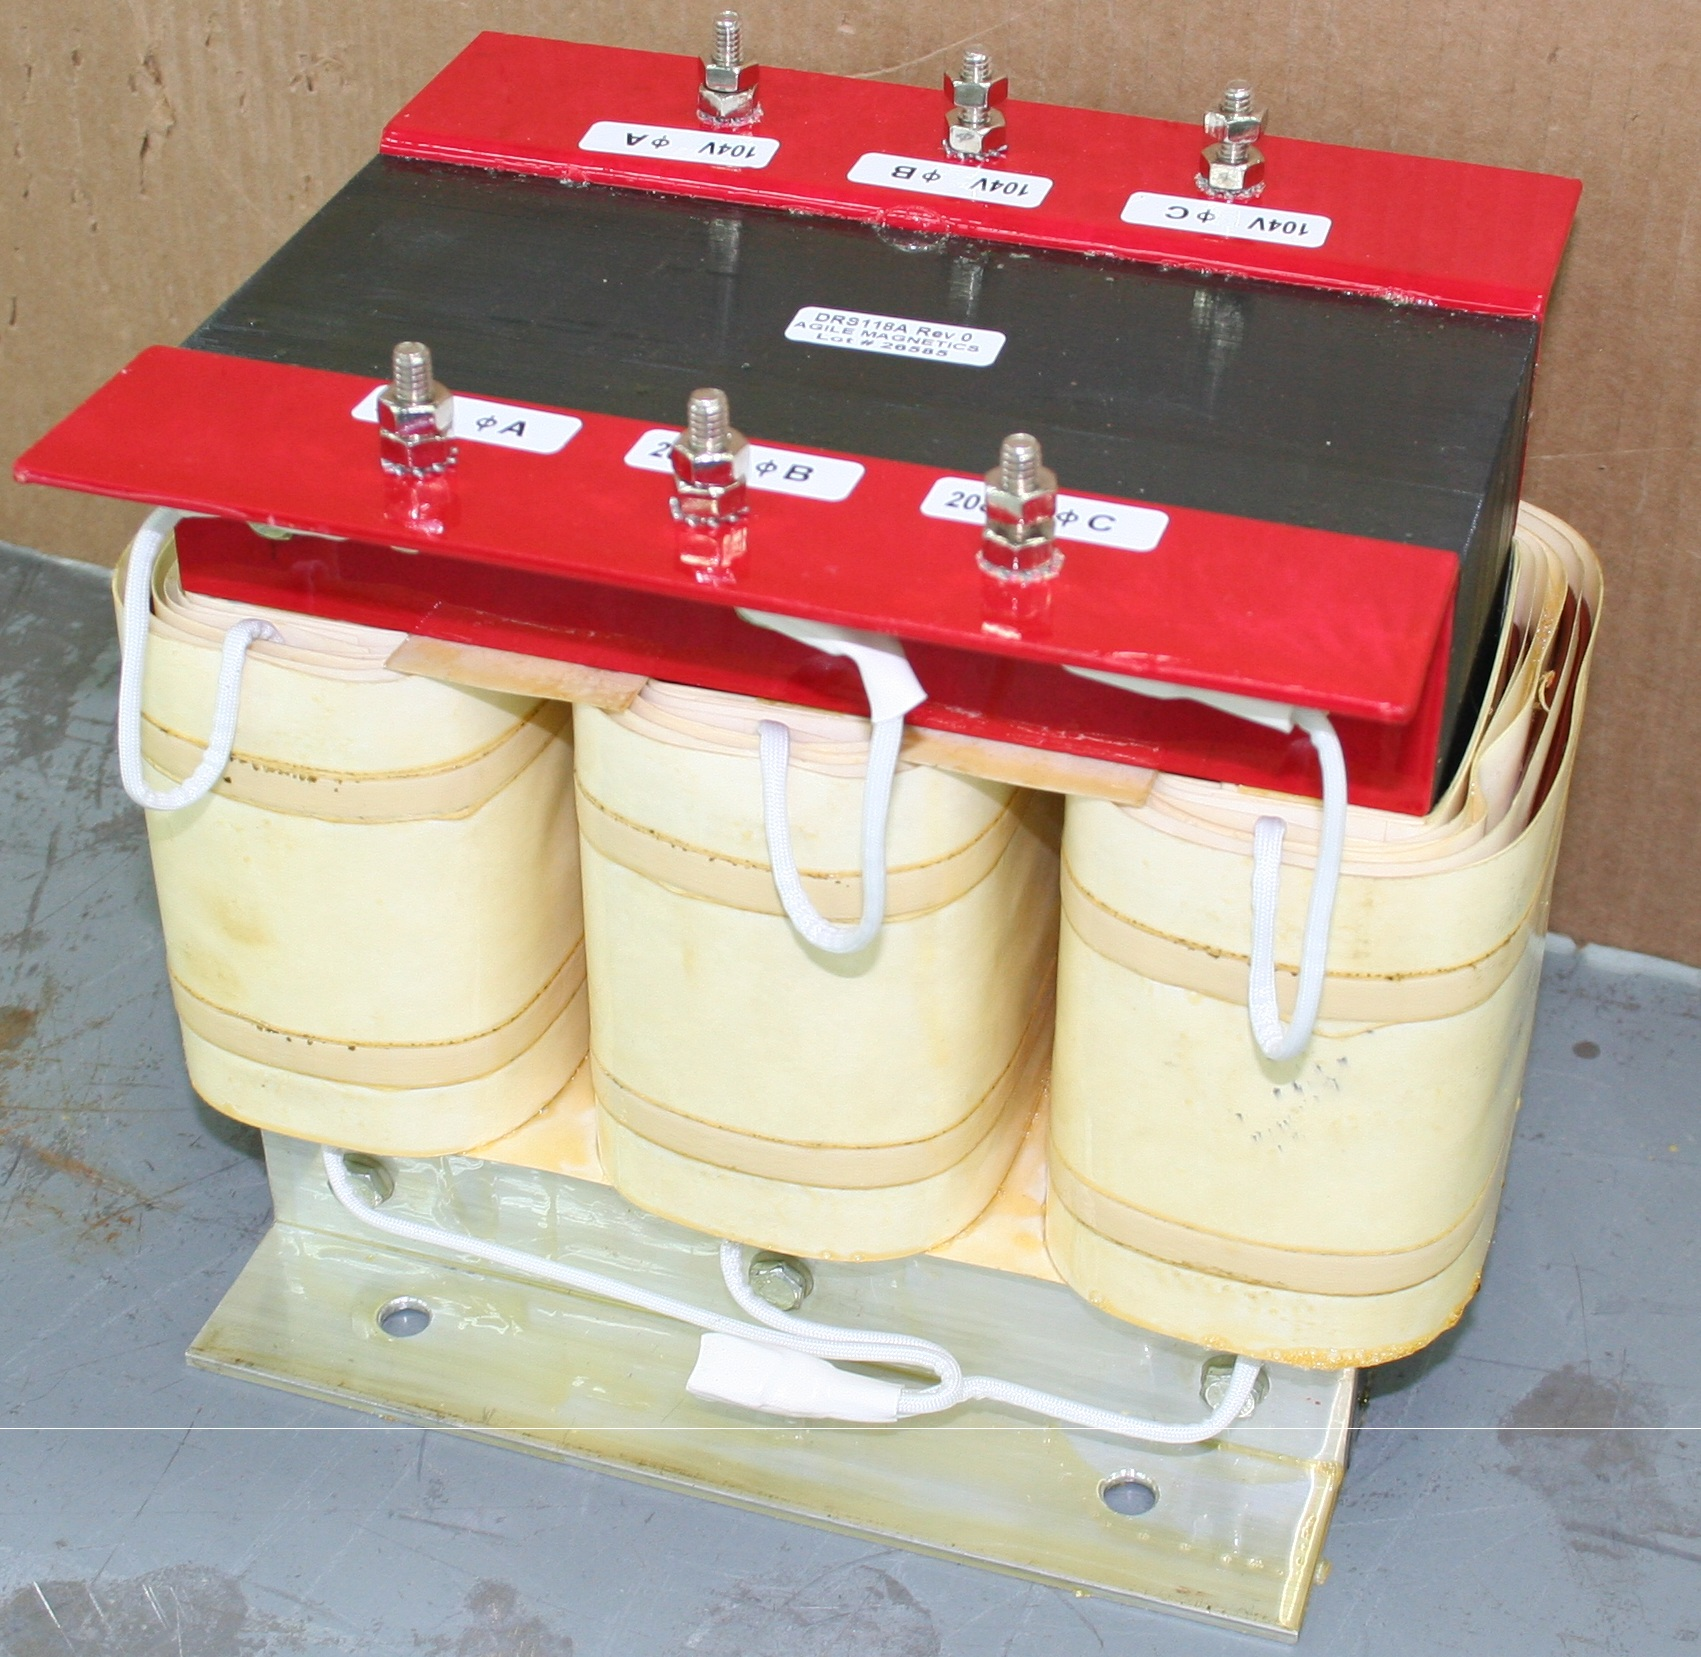 480 To 240 Volt Transformer That Operates A 480 3 Phase